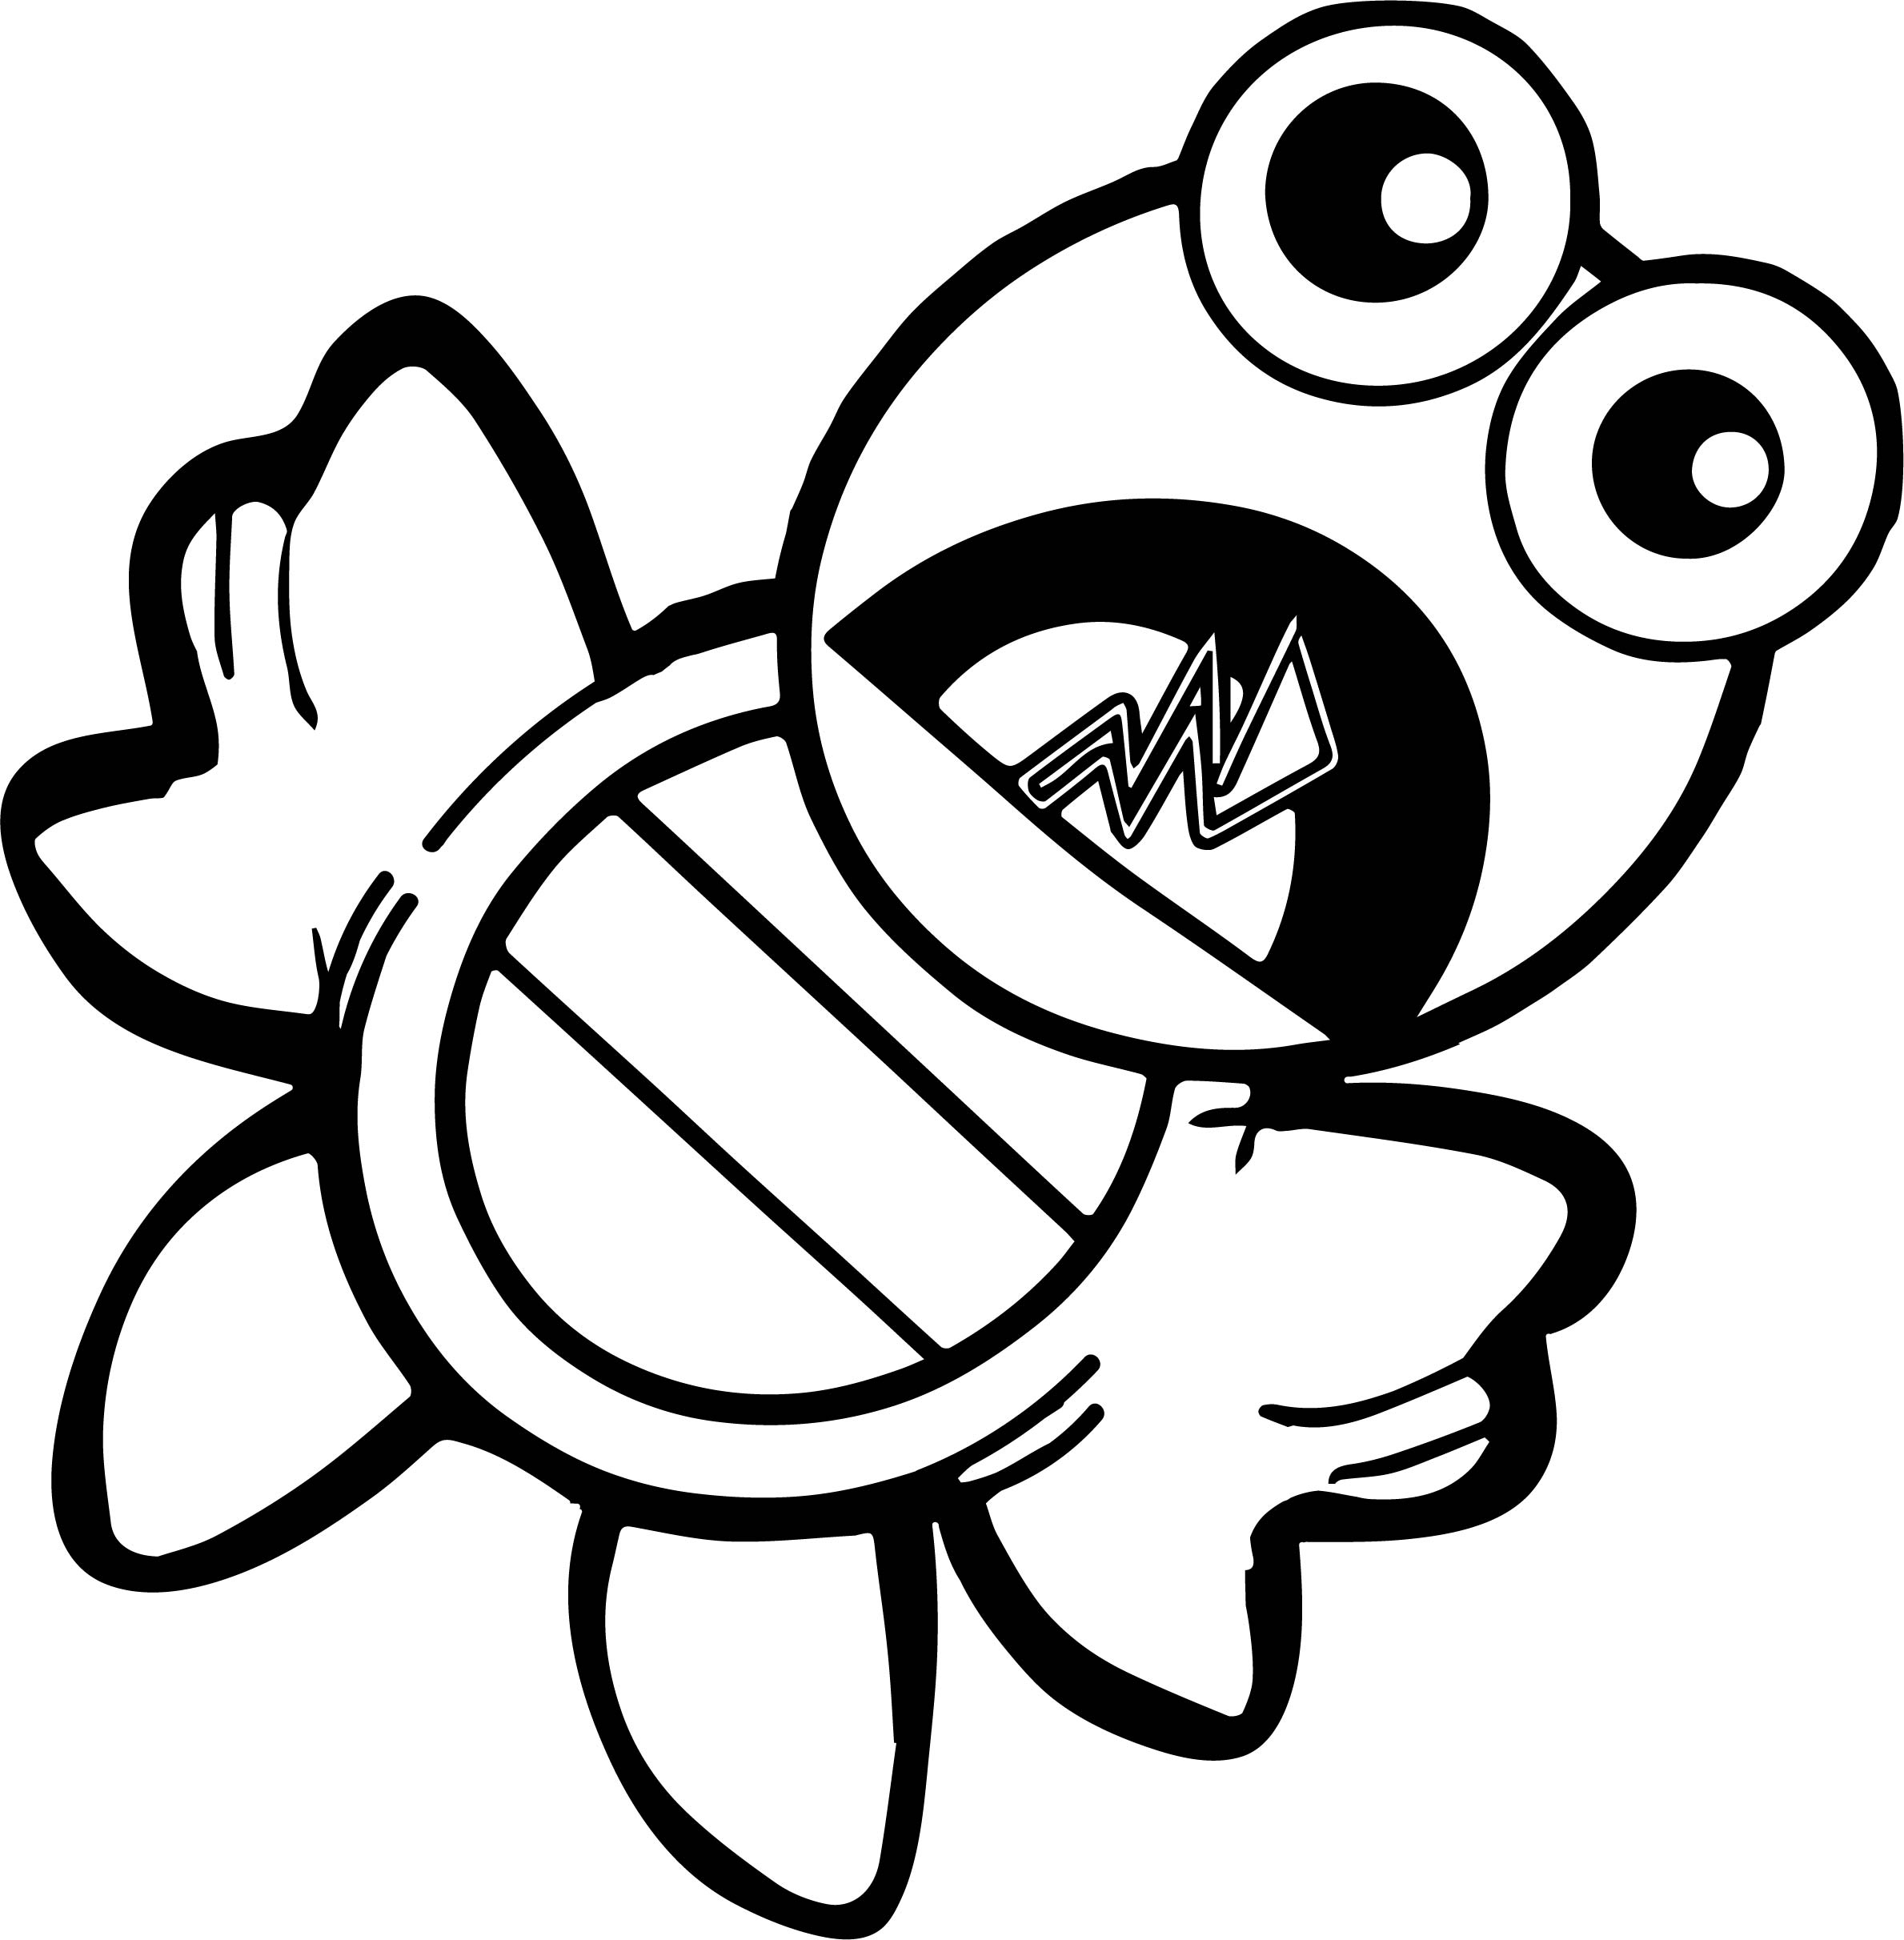 Tortoise Turtle Scream Coloring Page